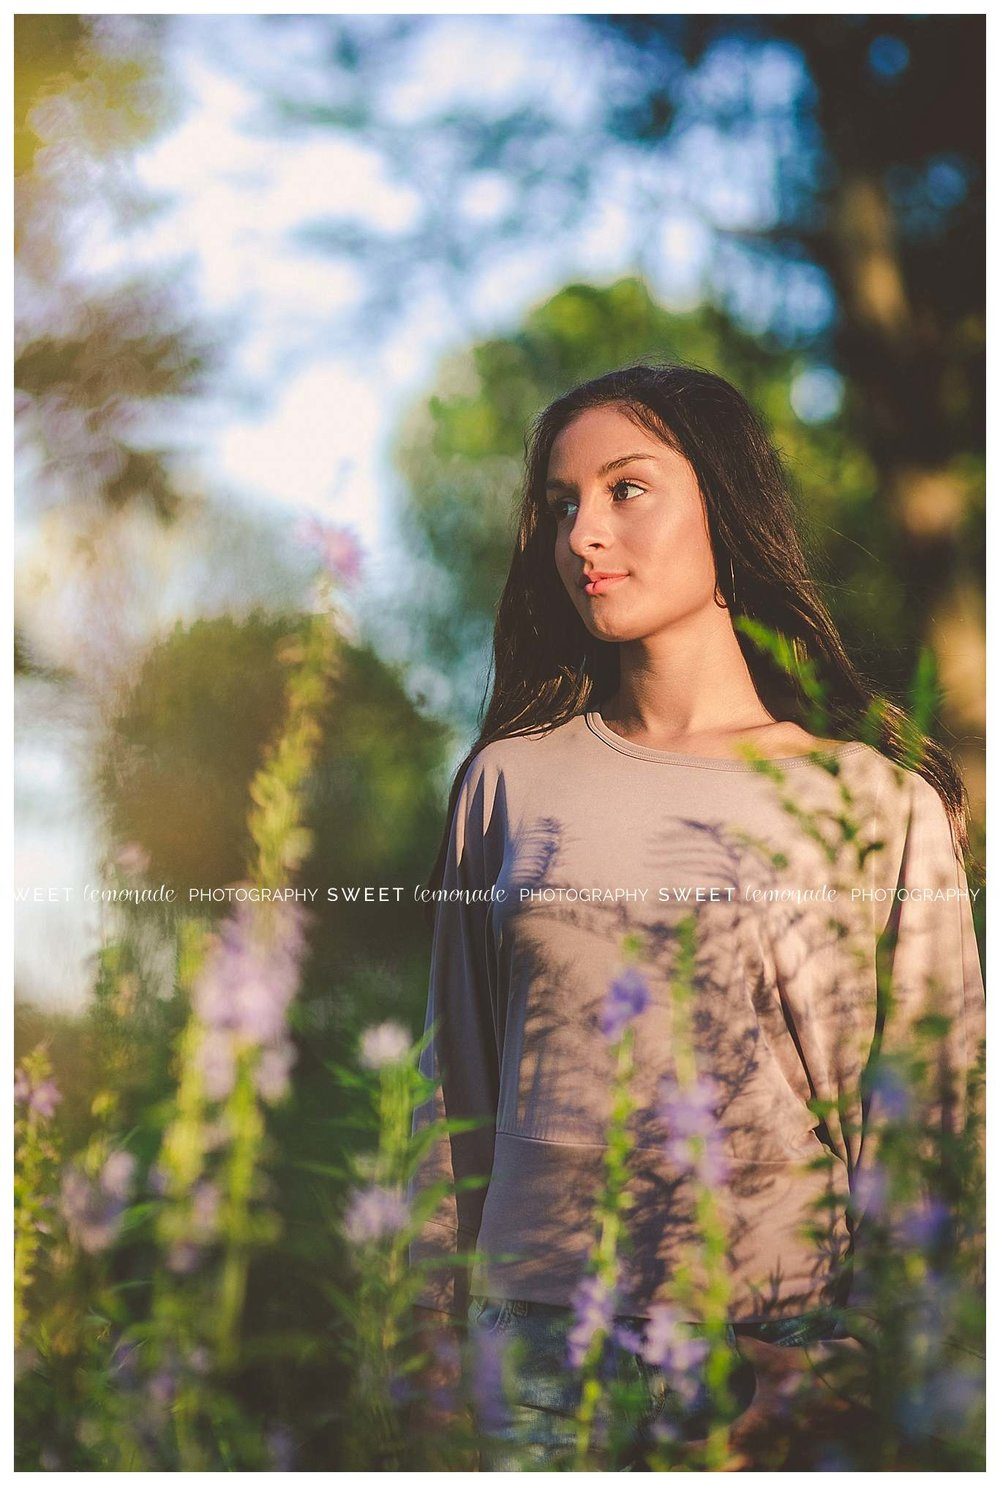 Senior picture girl purple top country nature golden hour